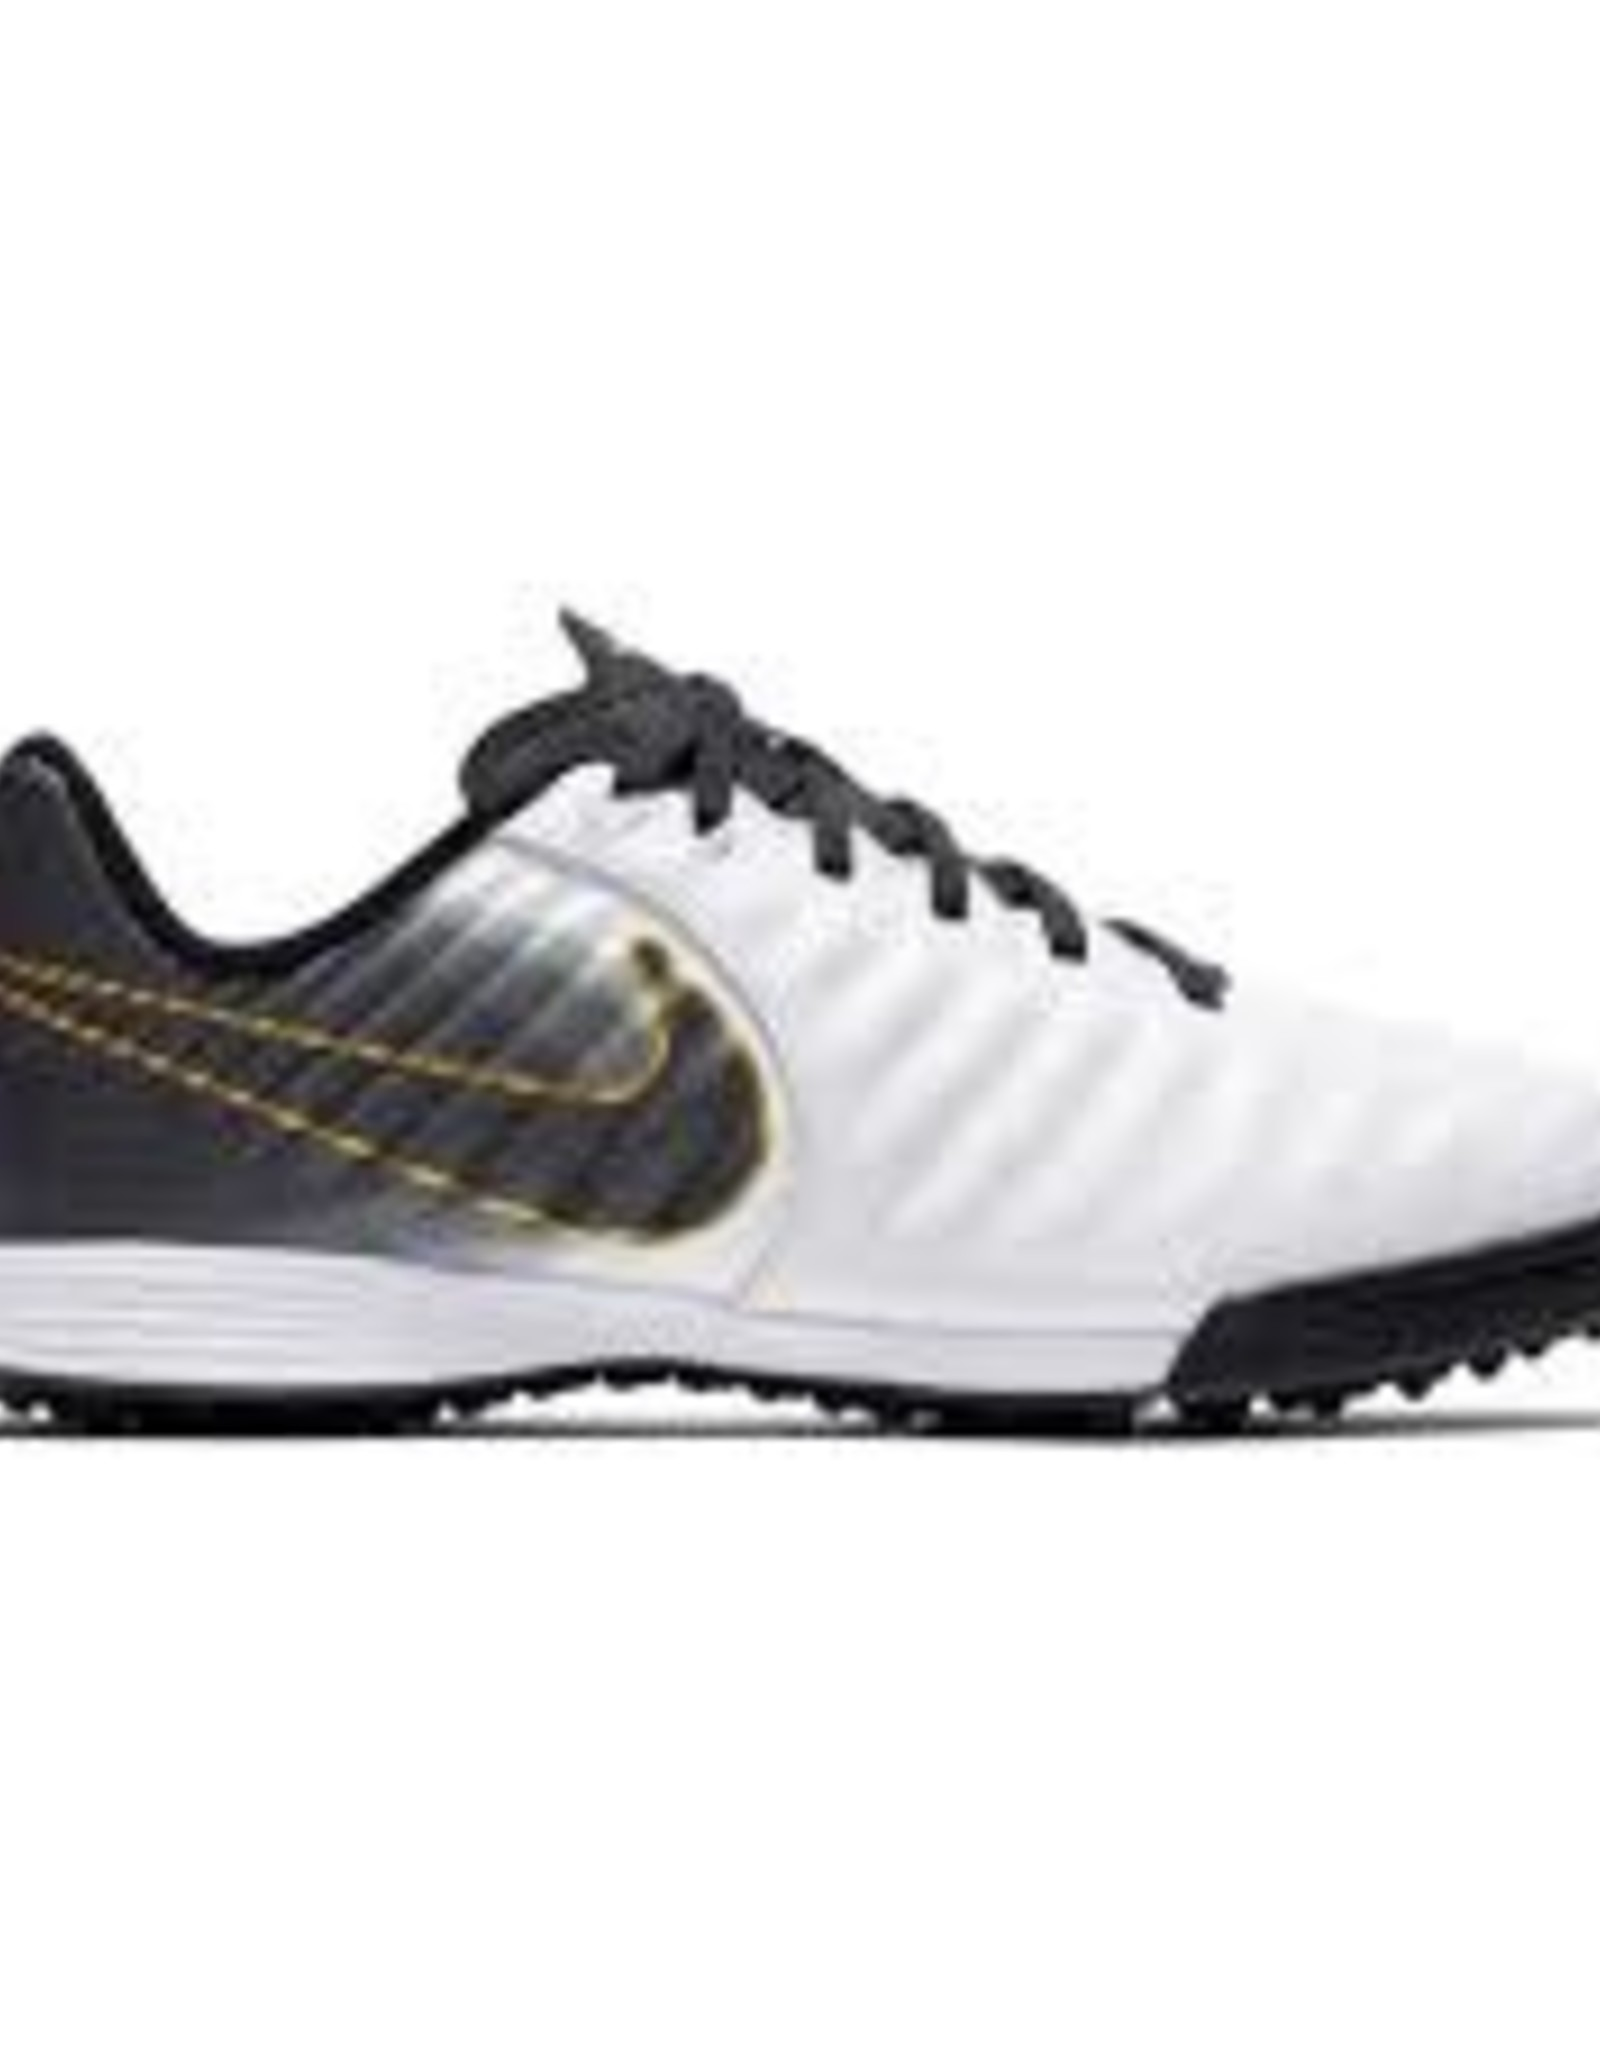 Nike Nike TF Legend 7 Academy Jr